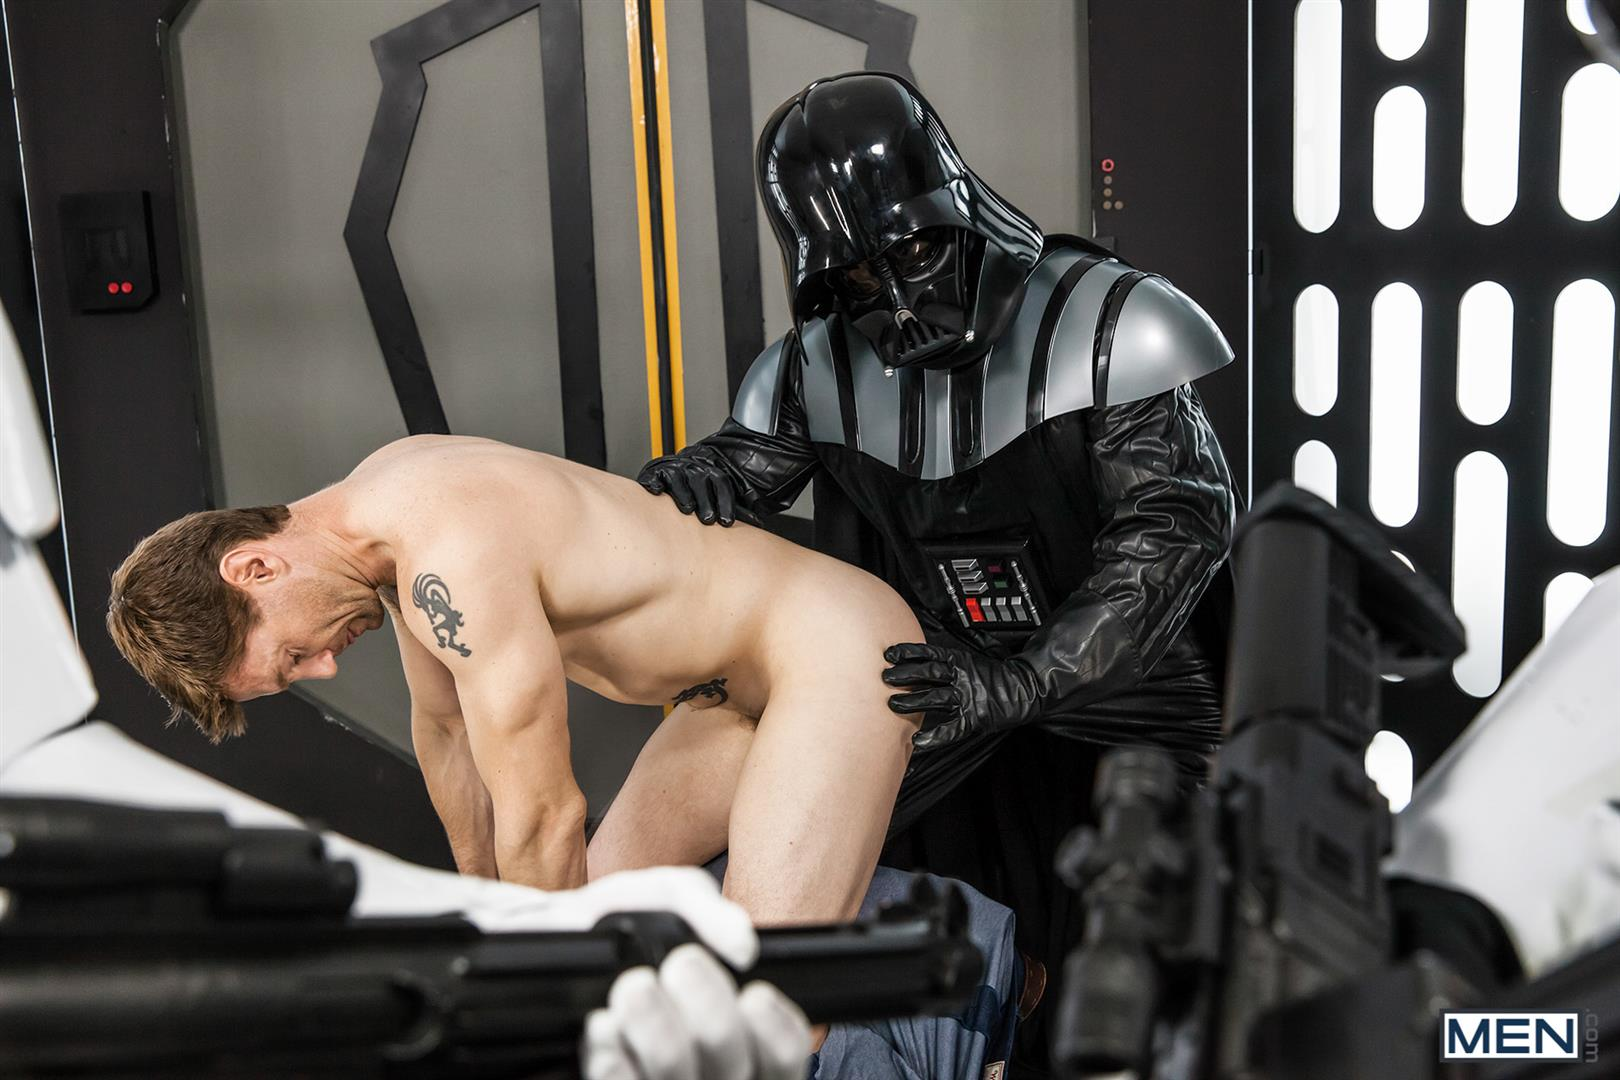 Men-Dennis-West-Gay-Star-Wars-Parody-XXX-Amateur-Gay-Porn-35 Who Knew that Darth Vader Likes To Fuck Man Ass?